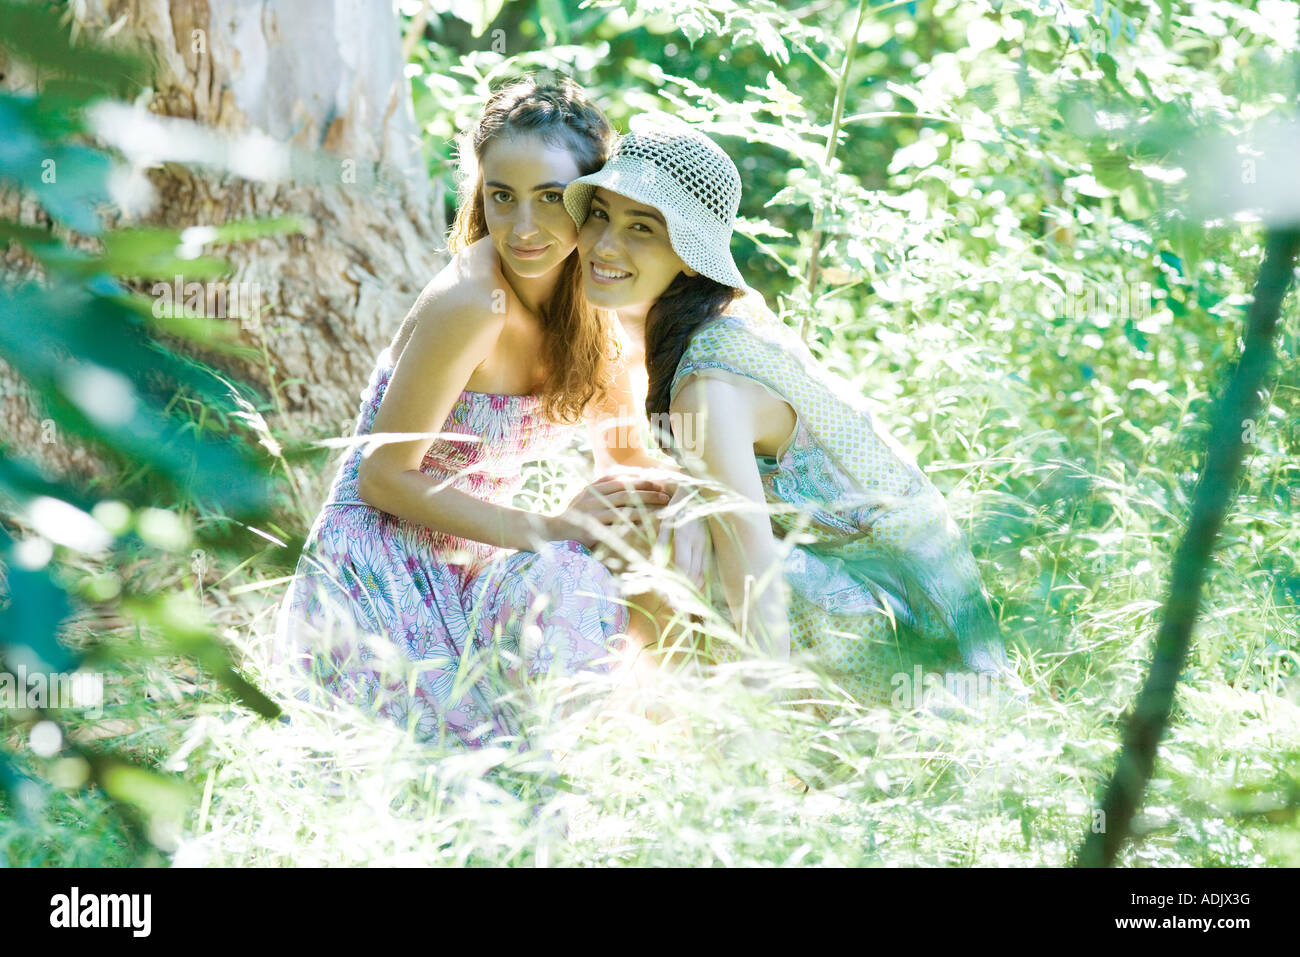 Two young women wearing sun dresses, crouching near tree with cheeks together, looking at camera - Stock Image